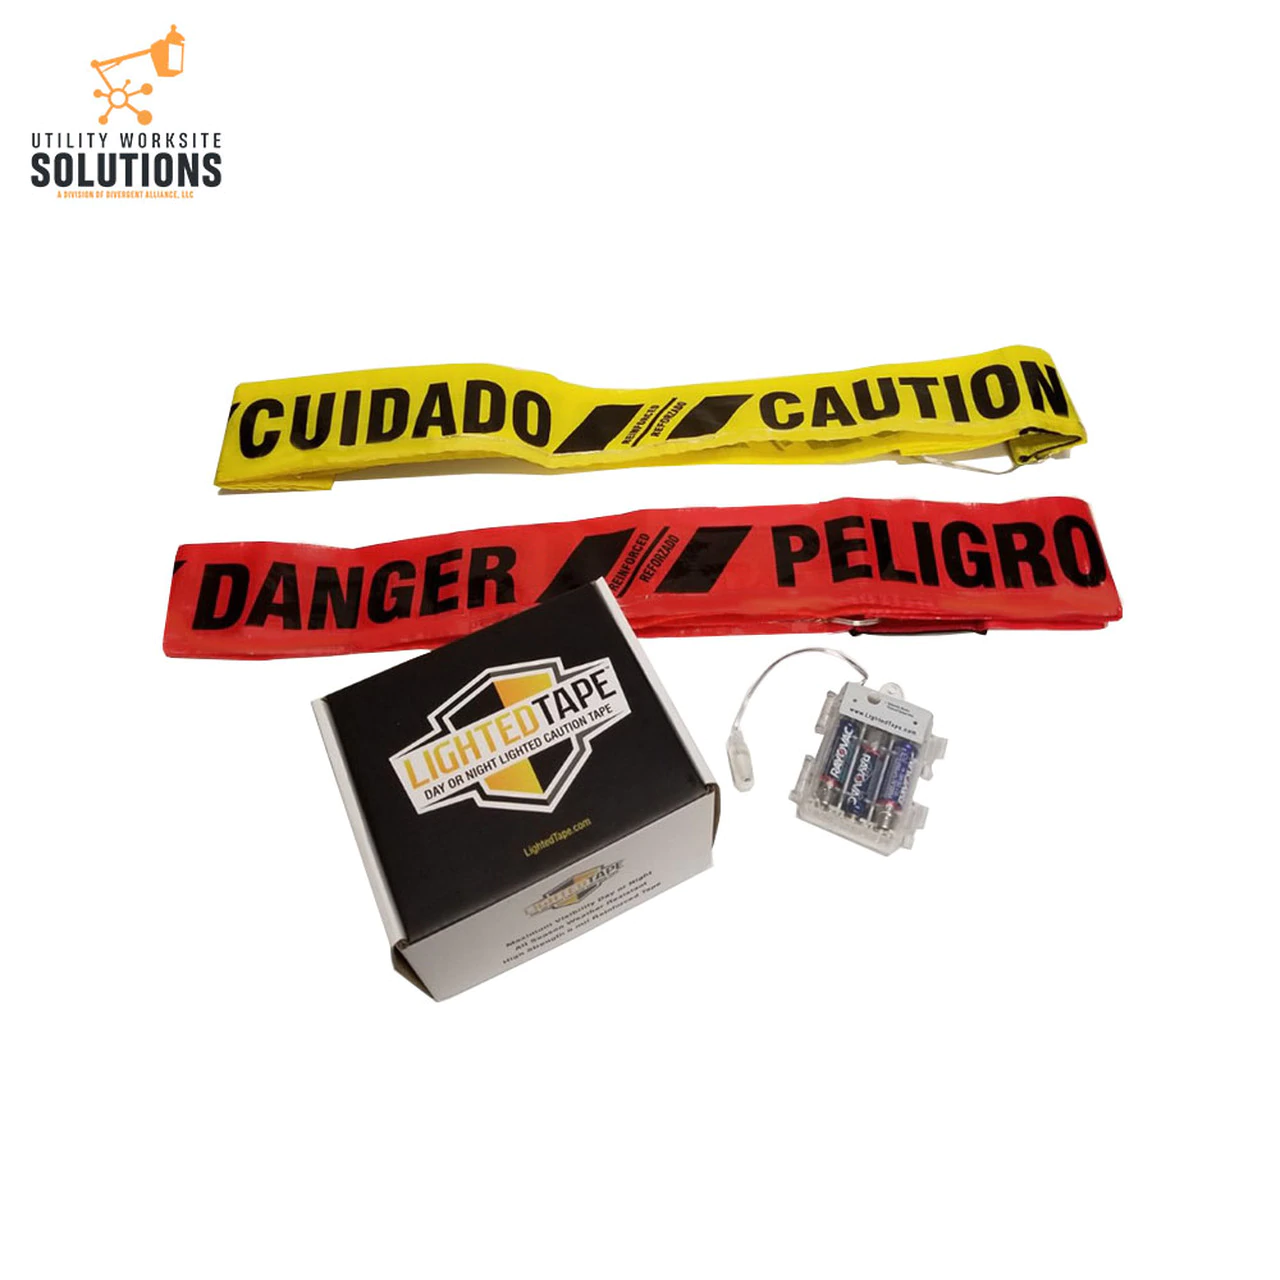 Reusable Caution Tape with LED